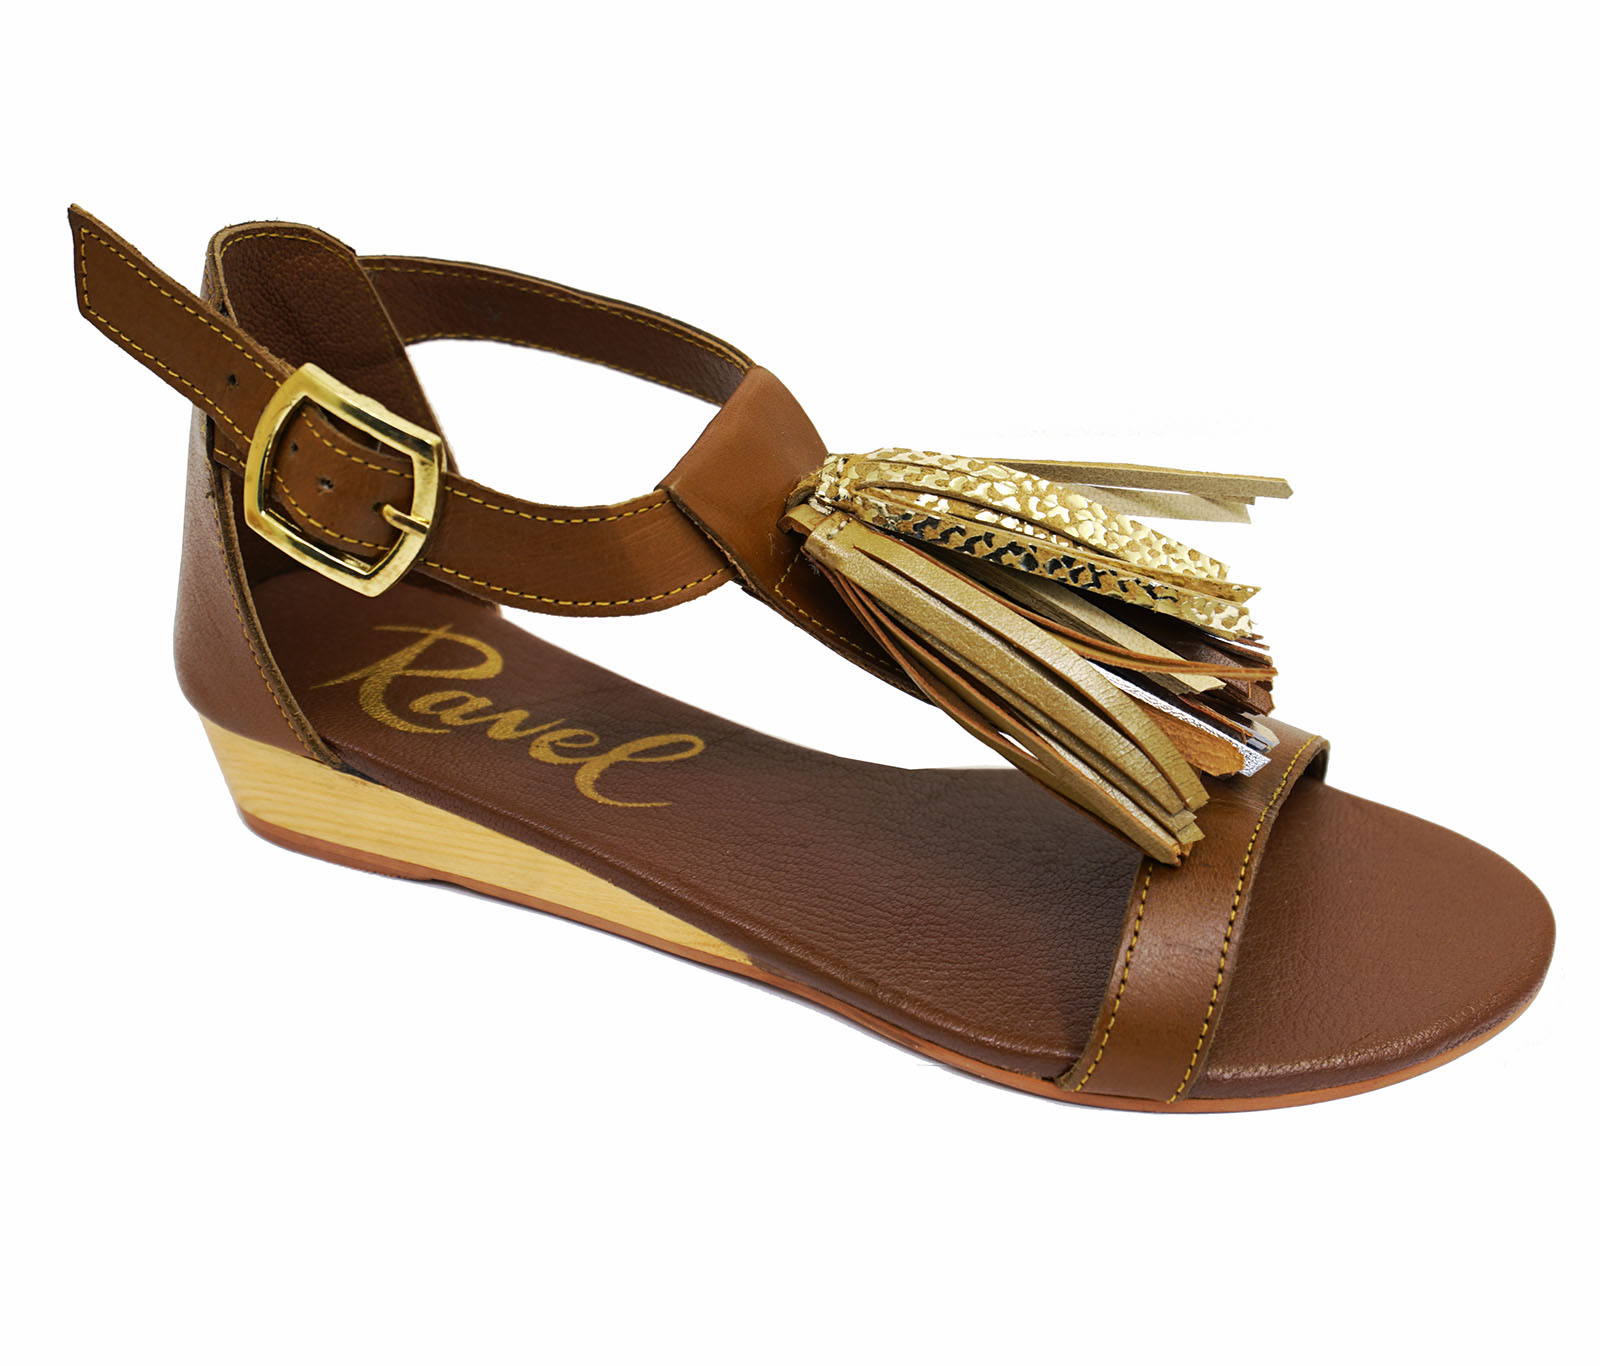 LADIES-RAVEL-ASTORIA-FLAT-LEATHER-TAN-SANDALS-SLIP-ON-T-BAR-STRAPPY-SHOES-UK-3-8 thumbnail 12